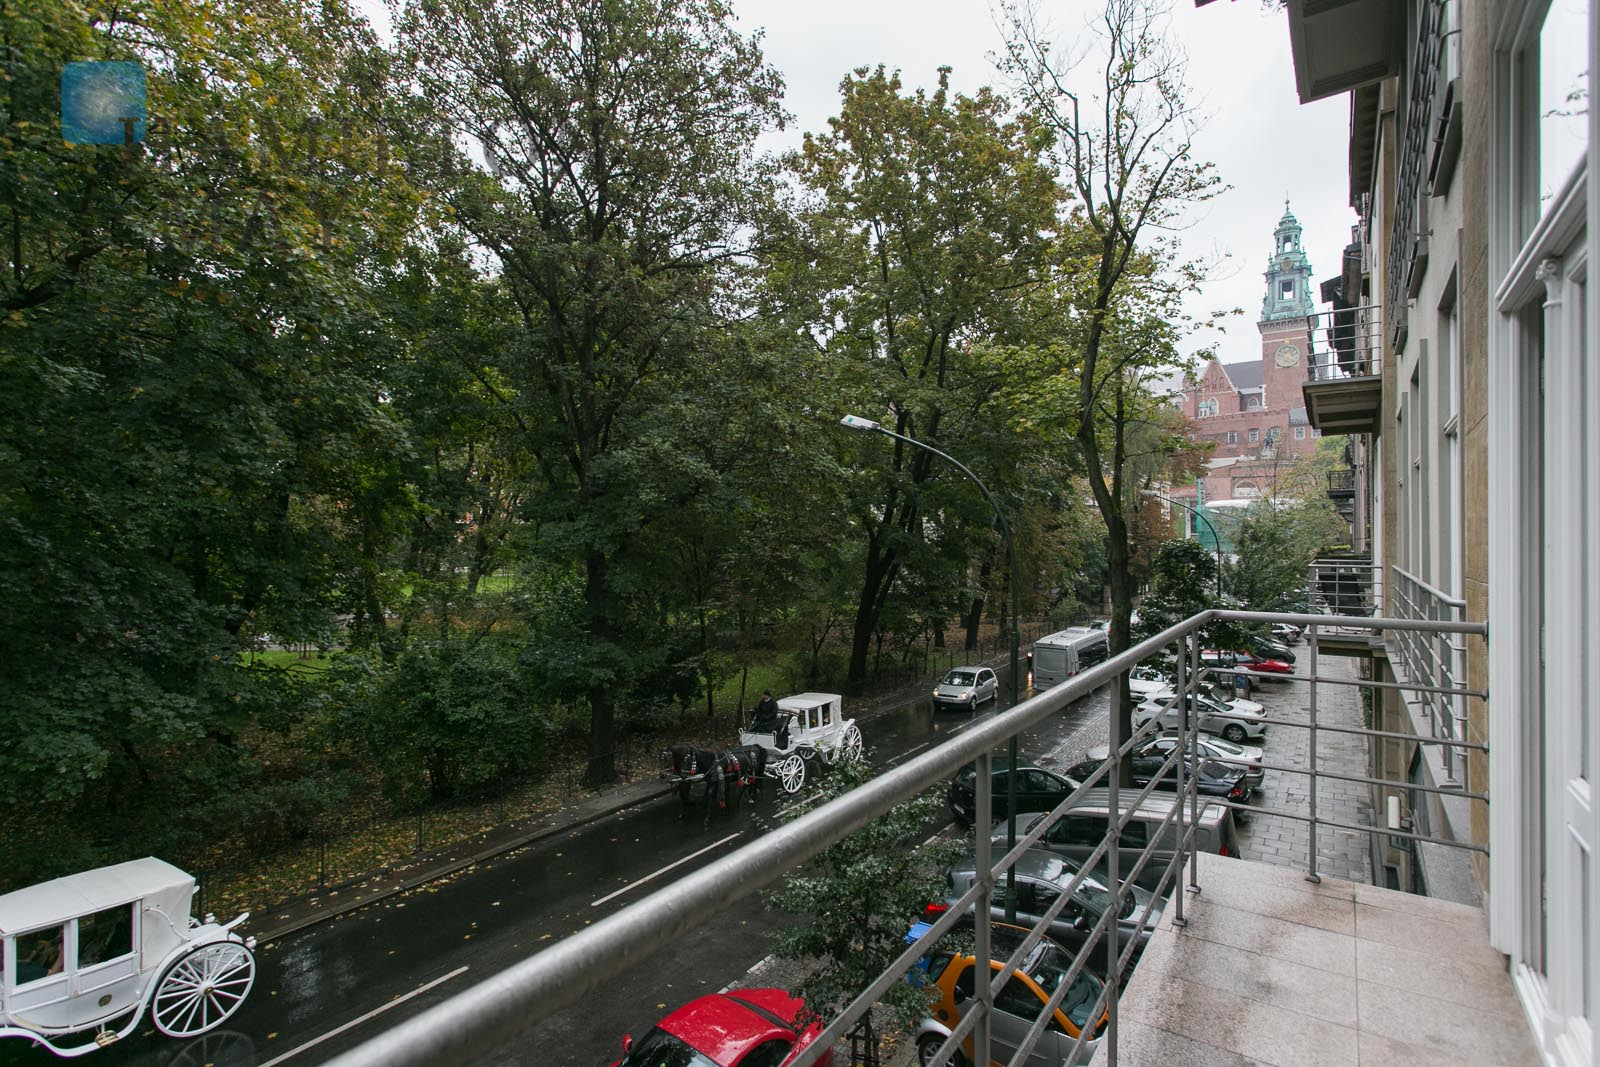 For sale, a spacious, 2 bedroom apartment with a view of the Wawel Castel, Krakow for sale